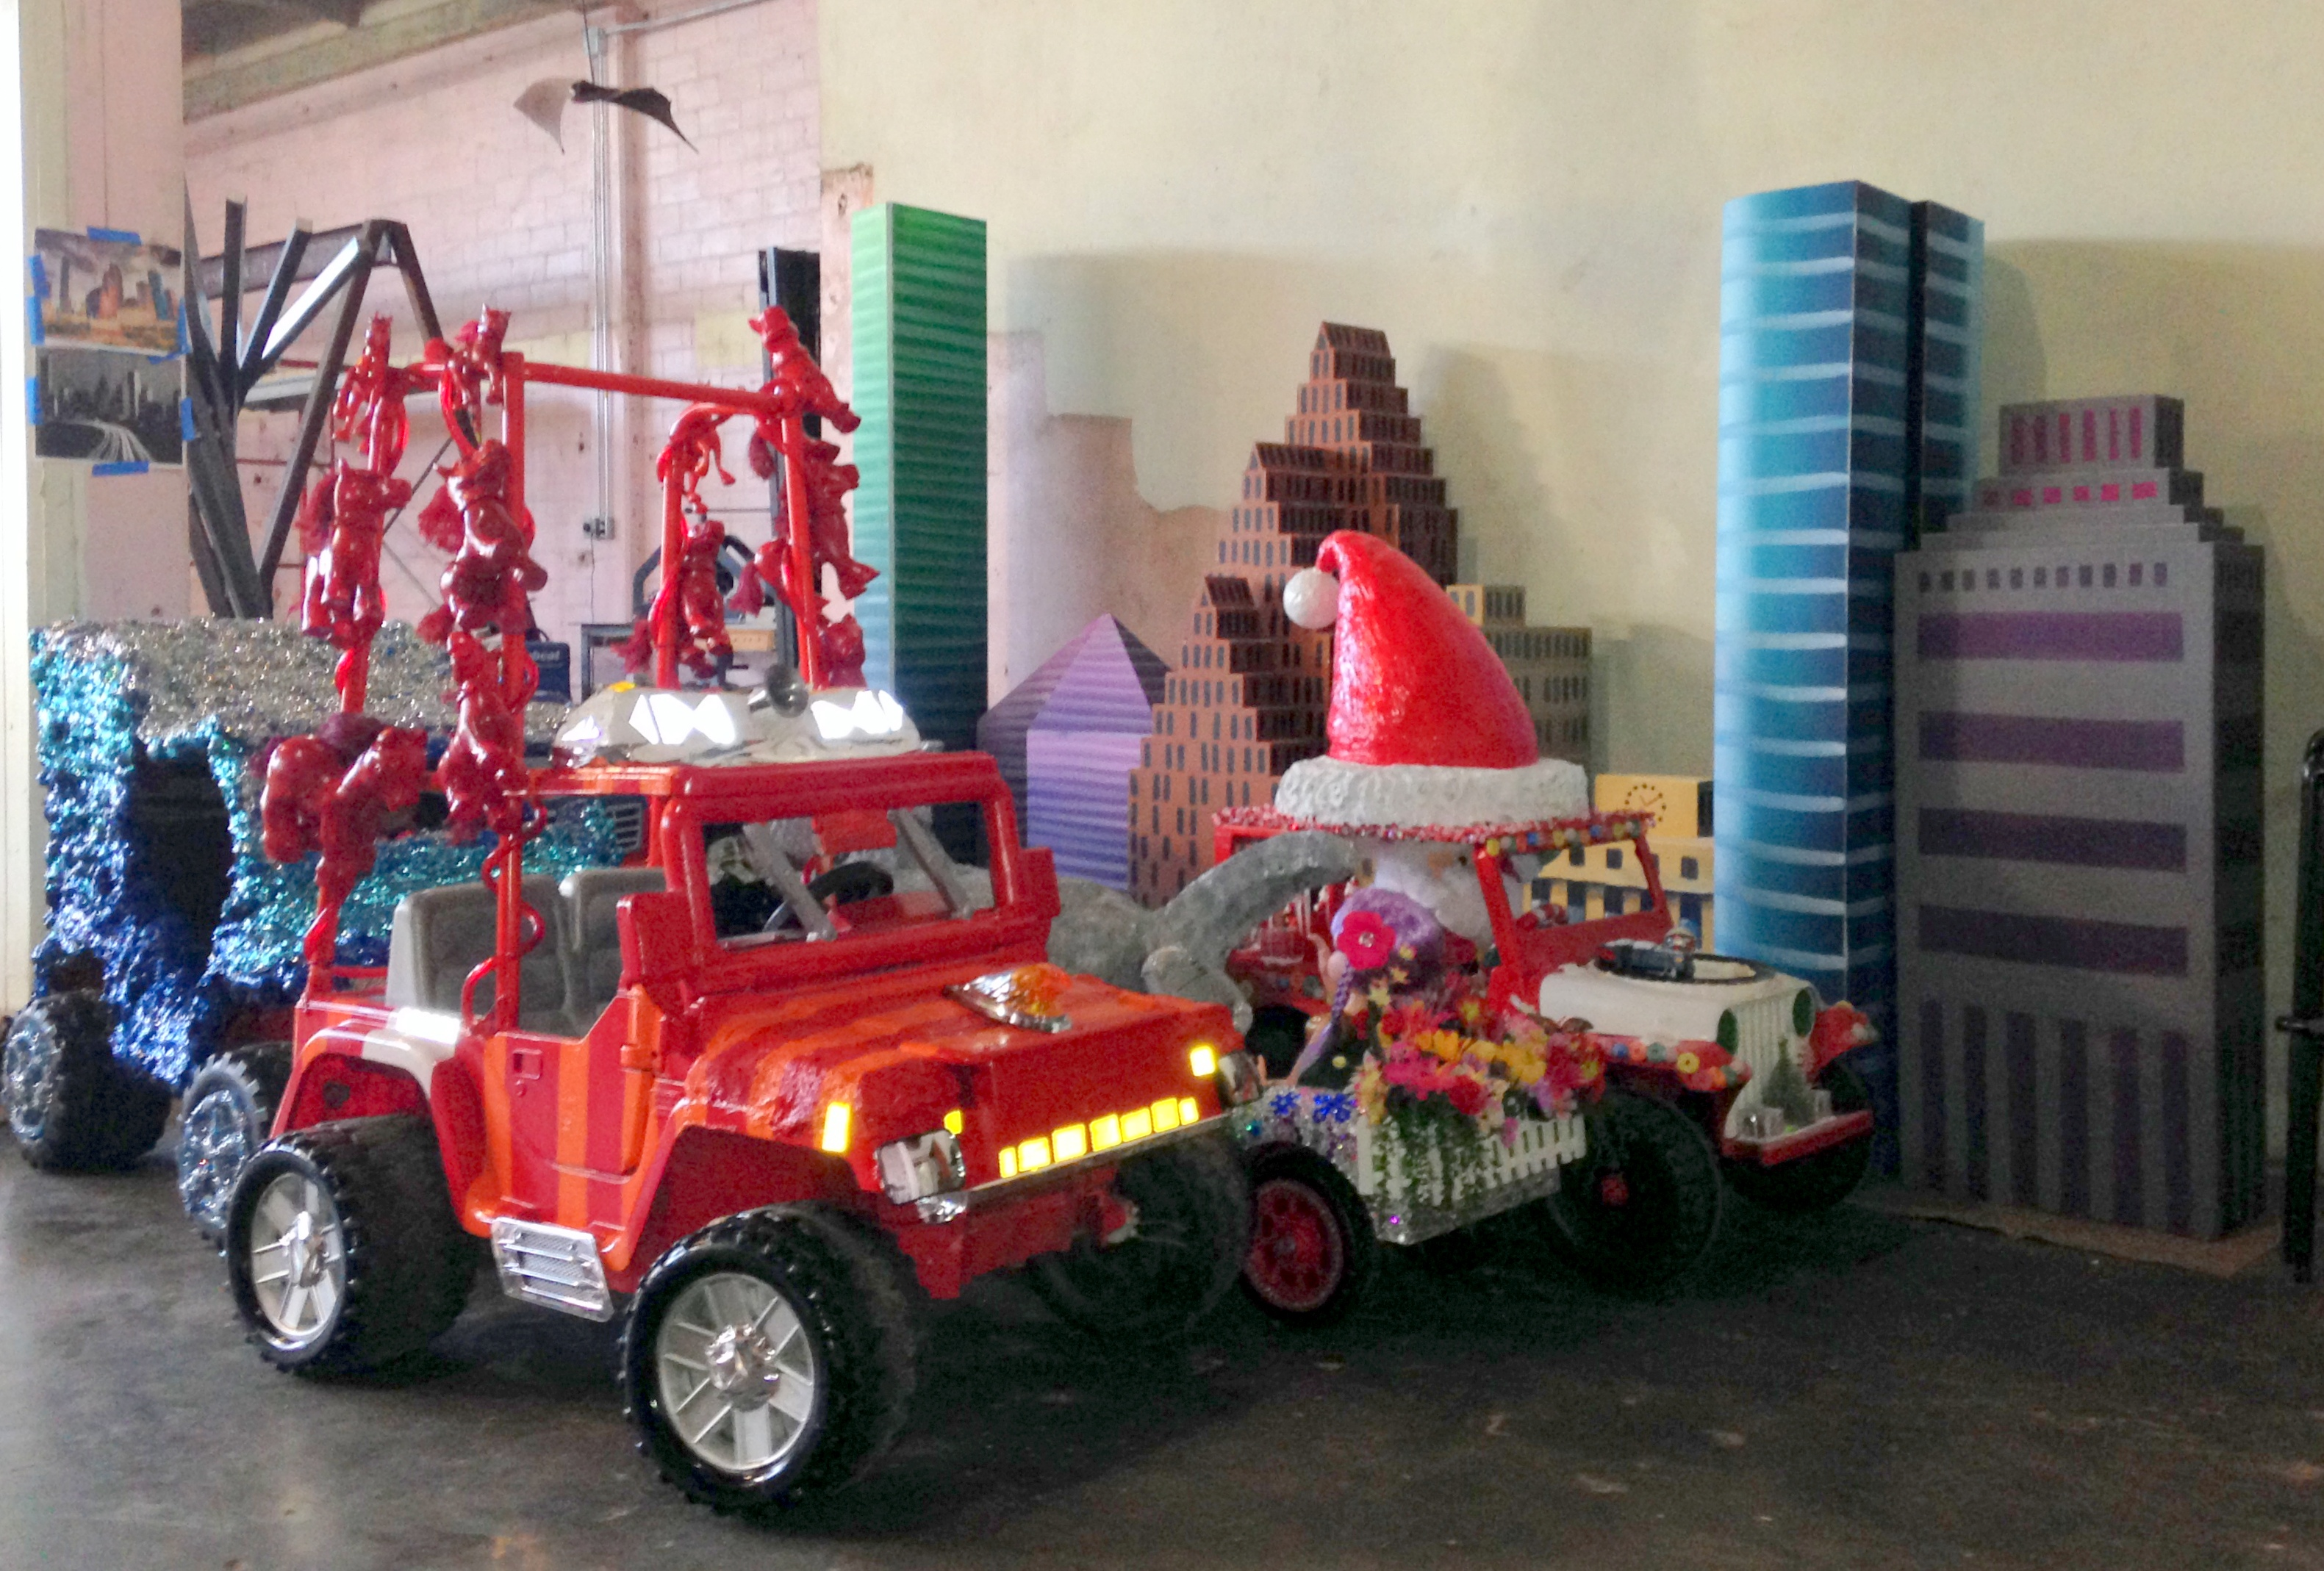 Mini Art Cars Ready for the Parade